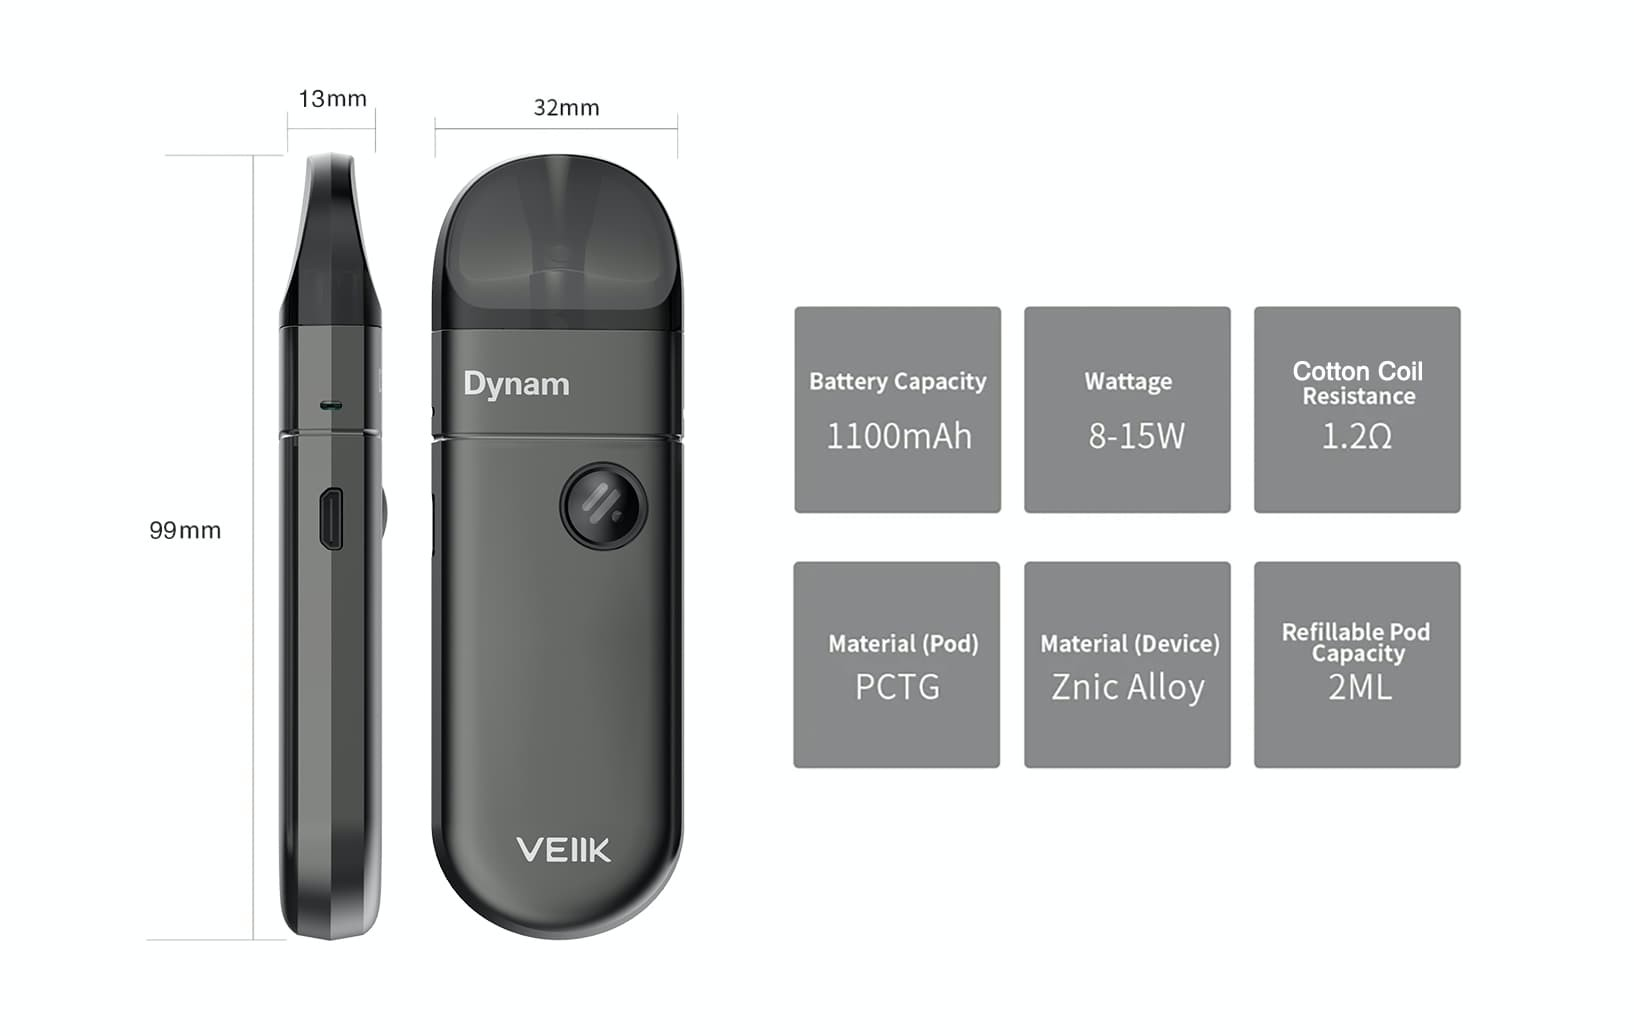 VEIIK best pod company for high-end personal vaporizer